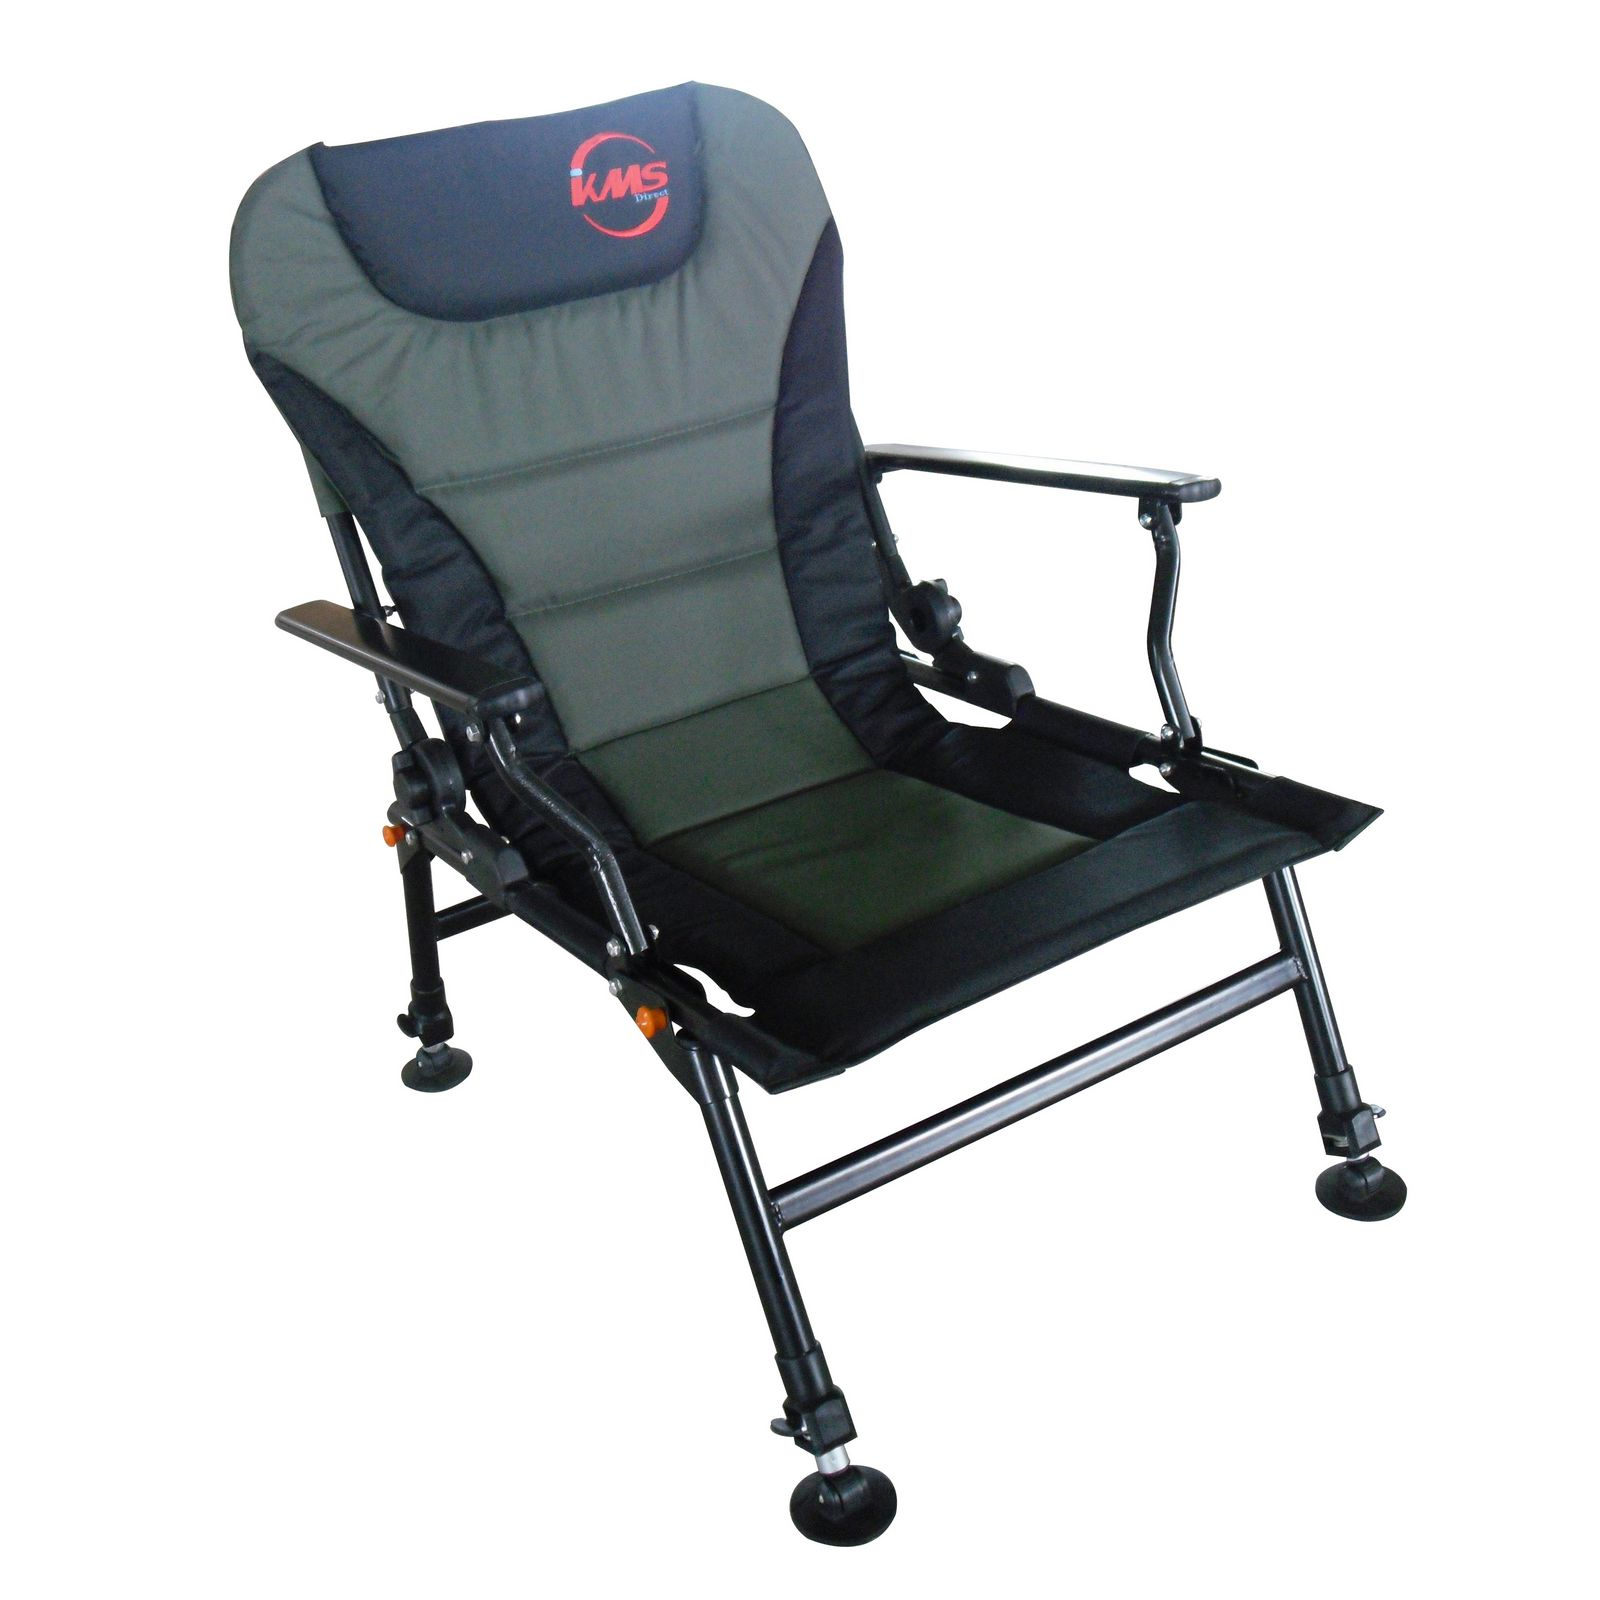 L Fishing Arm Rests Chair Folding Camping Recliner 4